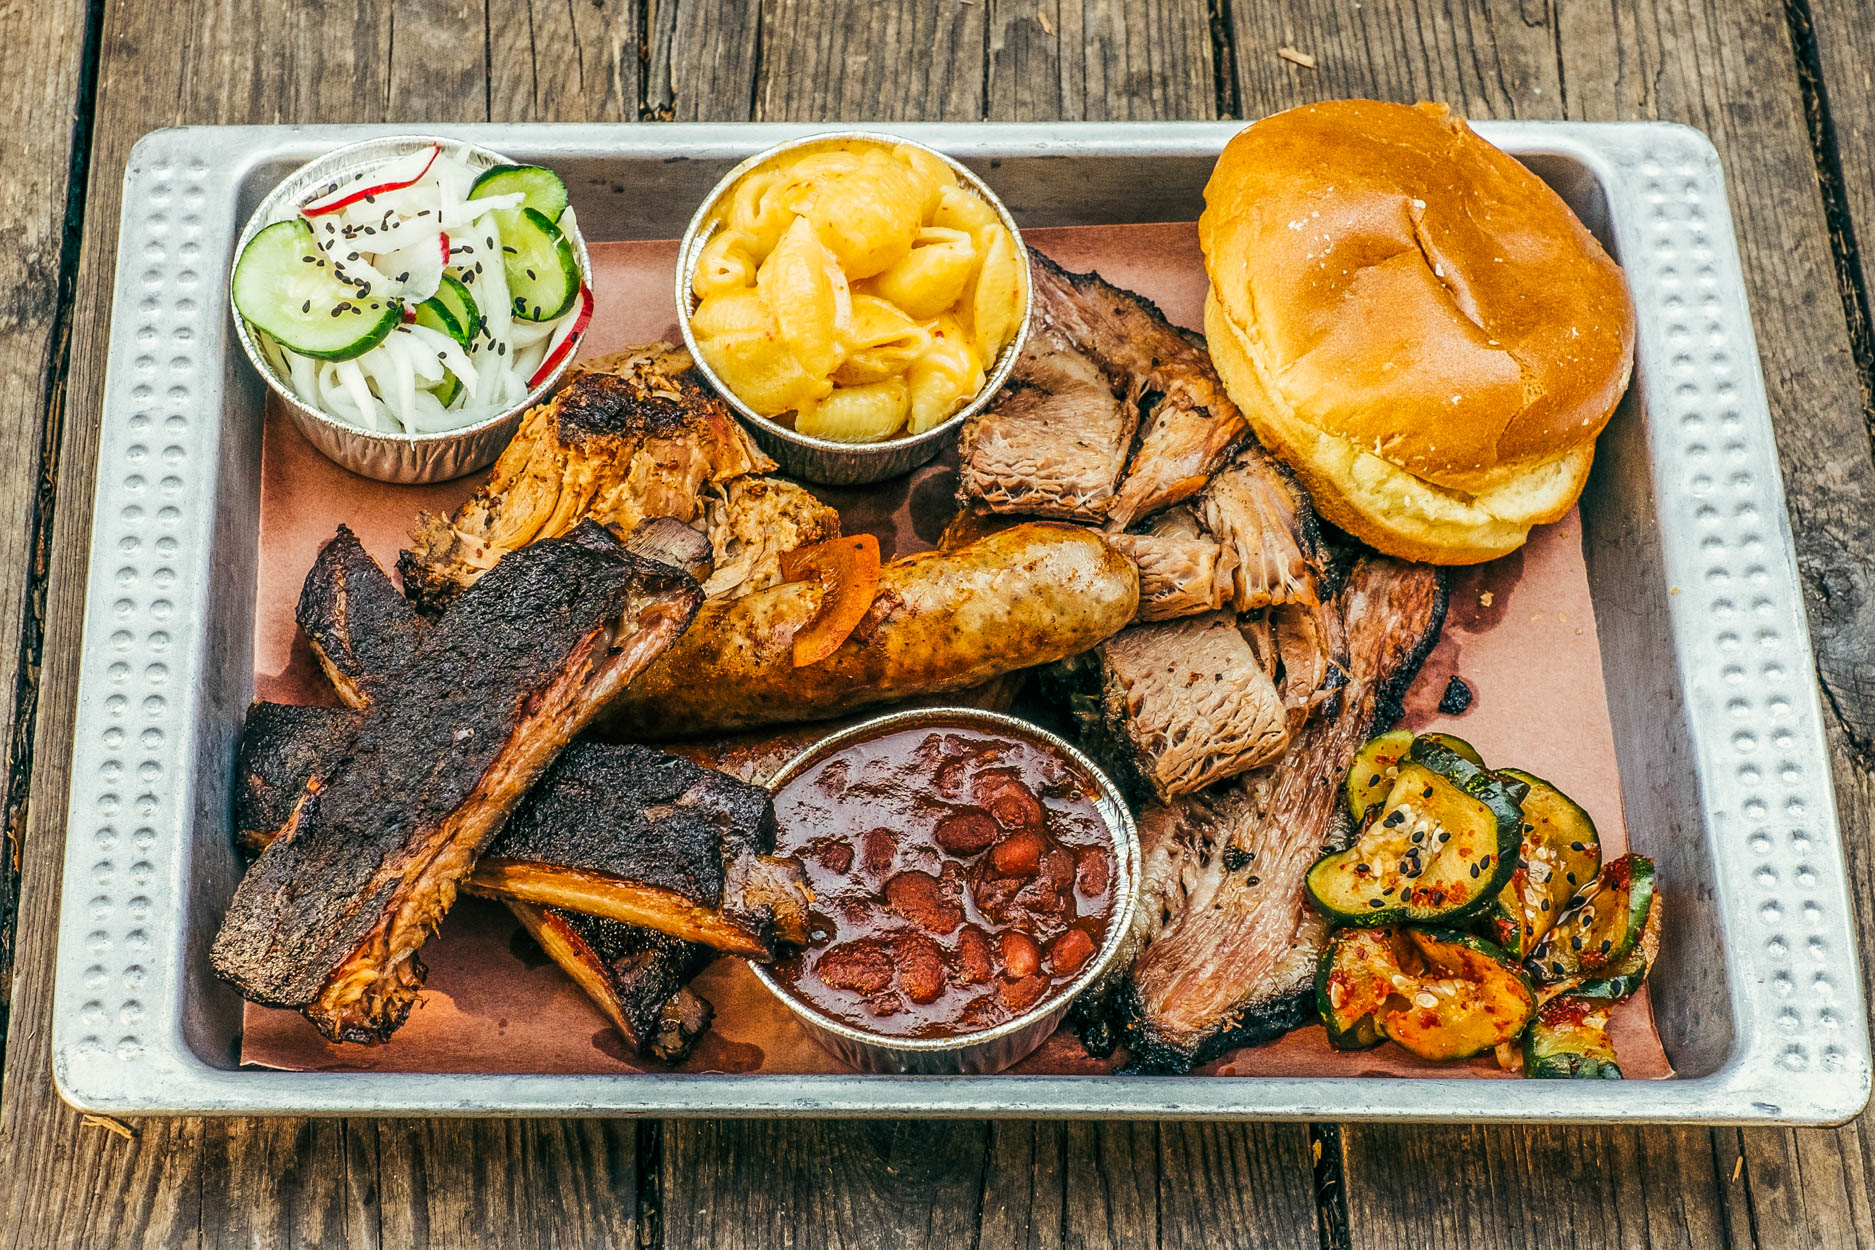 An Heirloom Market barbecue platter